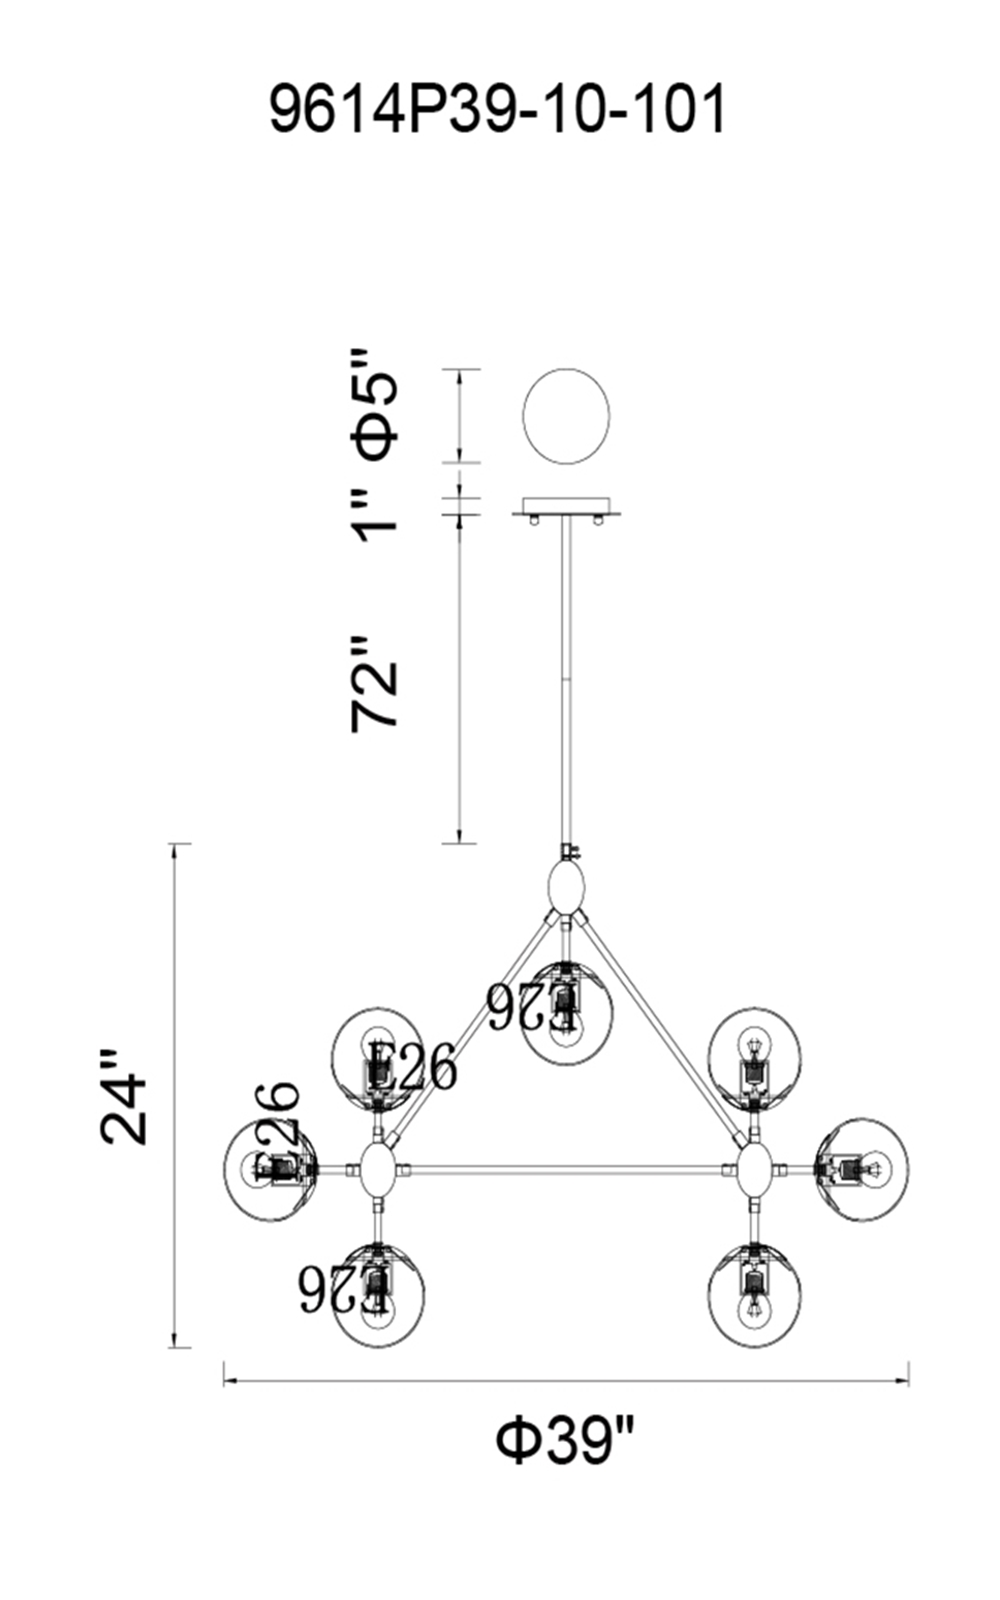 CWI Lighting Glow 10 Light Chandelier With Black Finish Model: 9614P39-10-101 Line Drawing